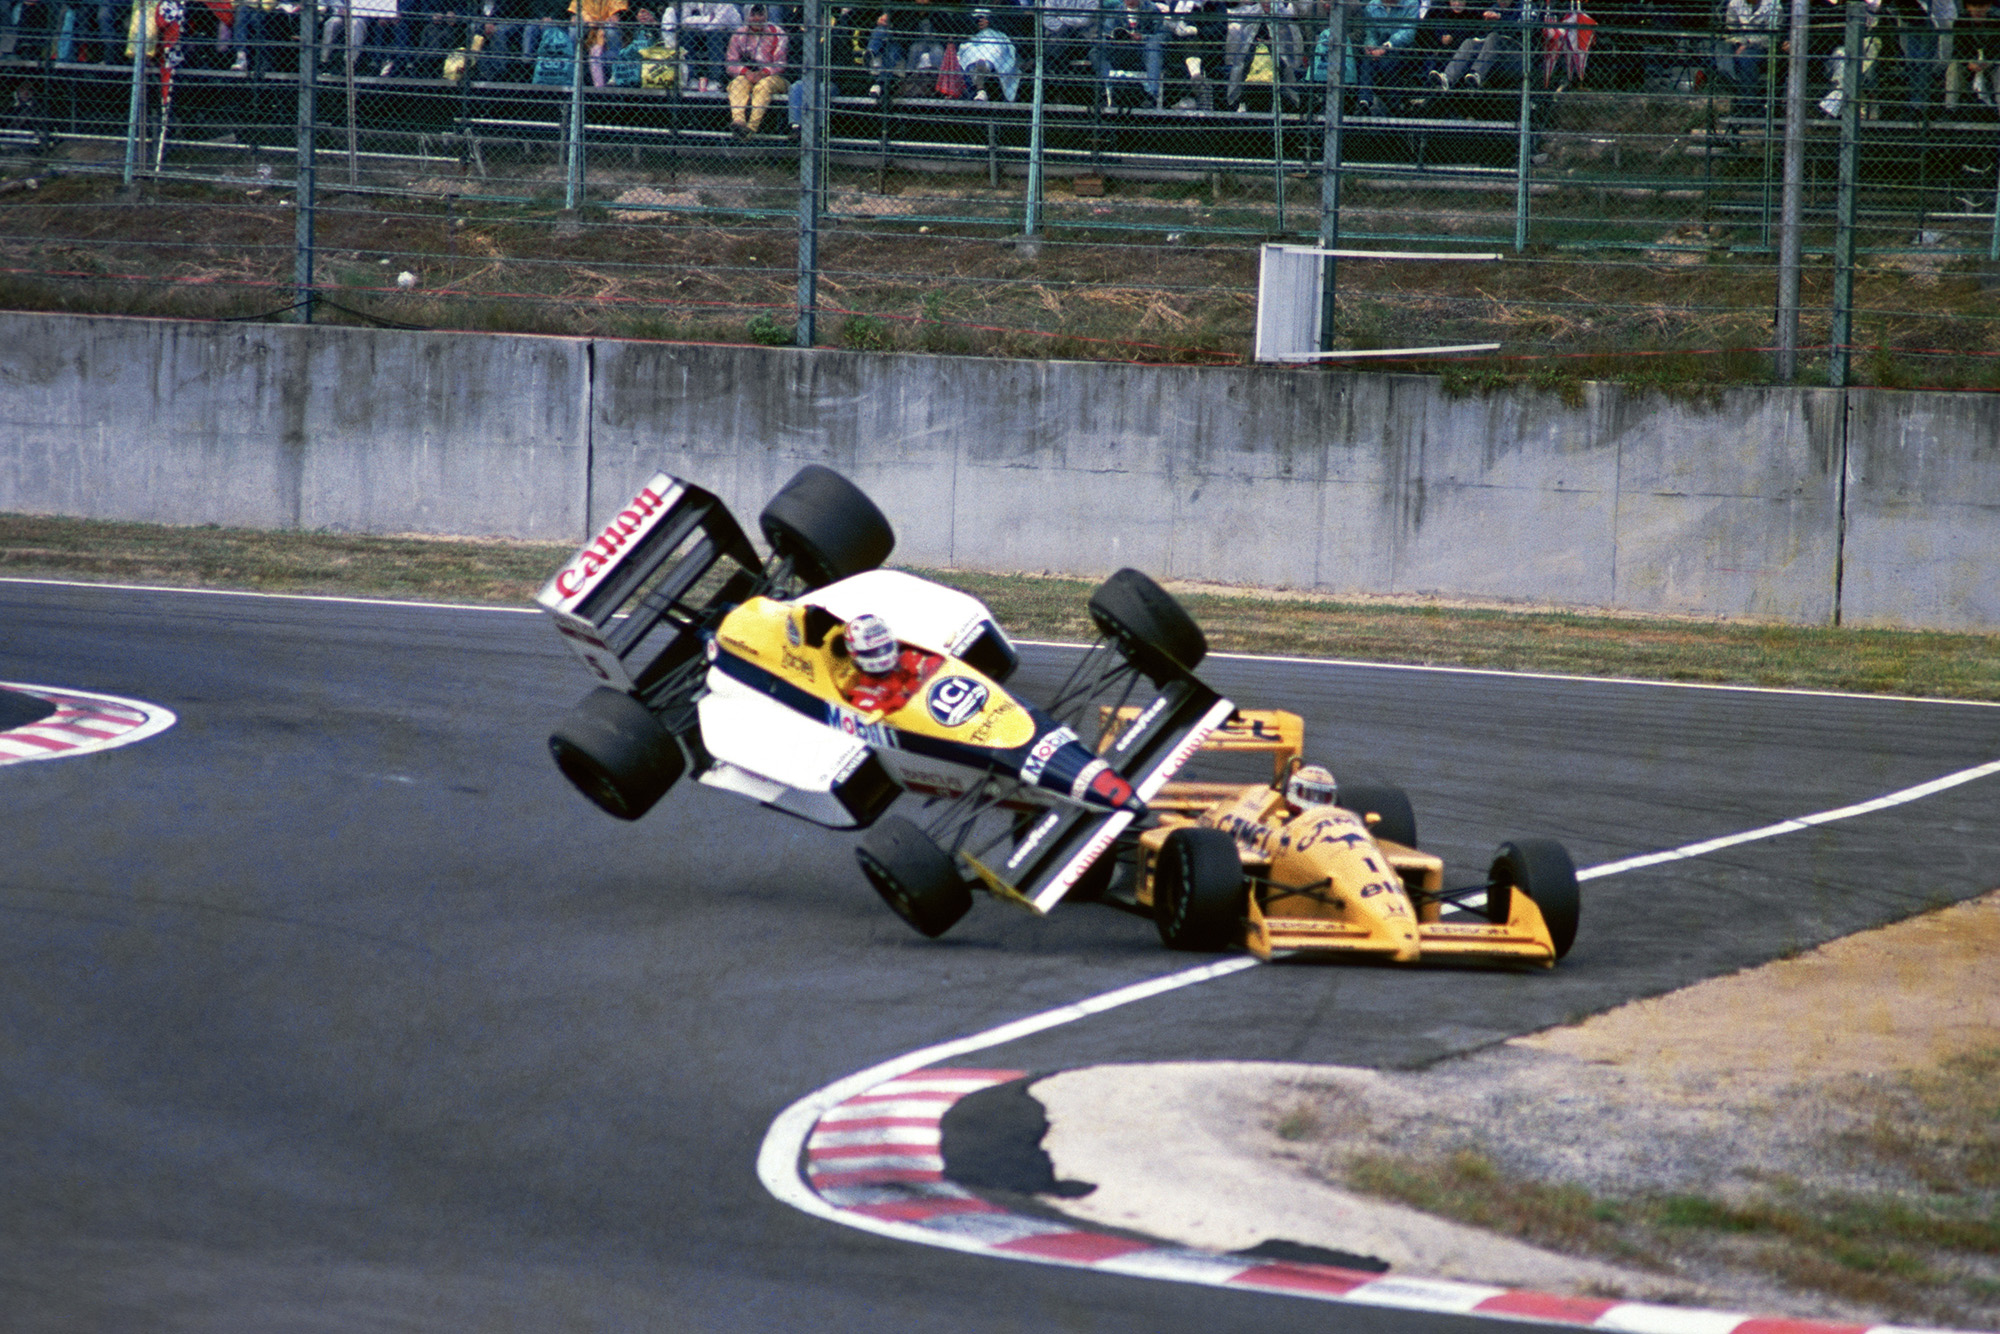 Nelson Piquet and Nigel Mansell clash in the 1988 Japanese Grand Prix